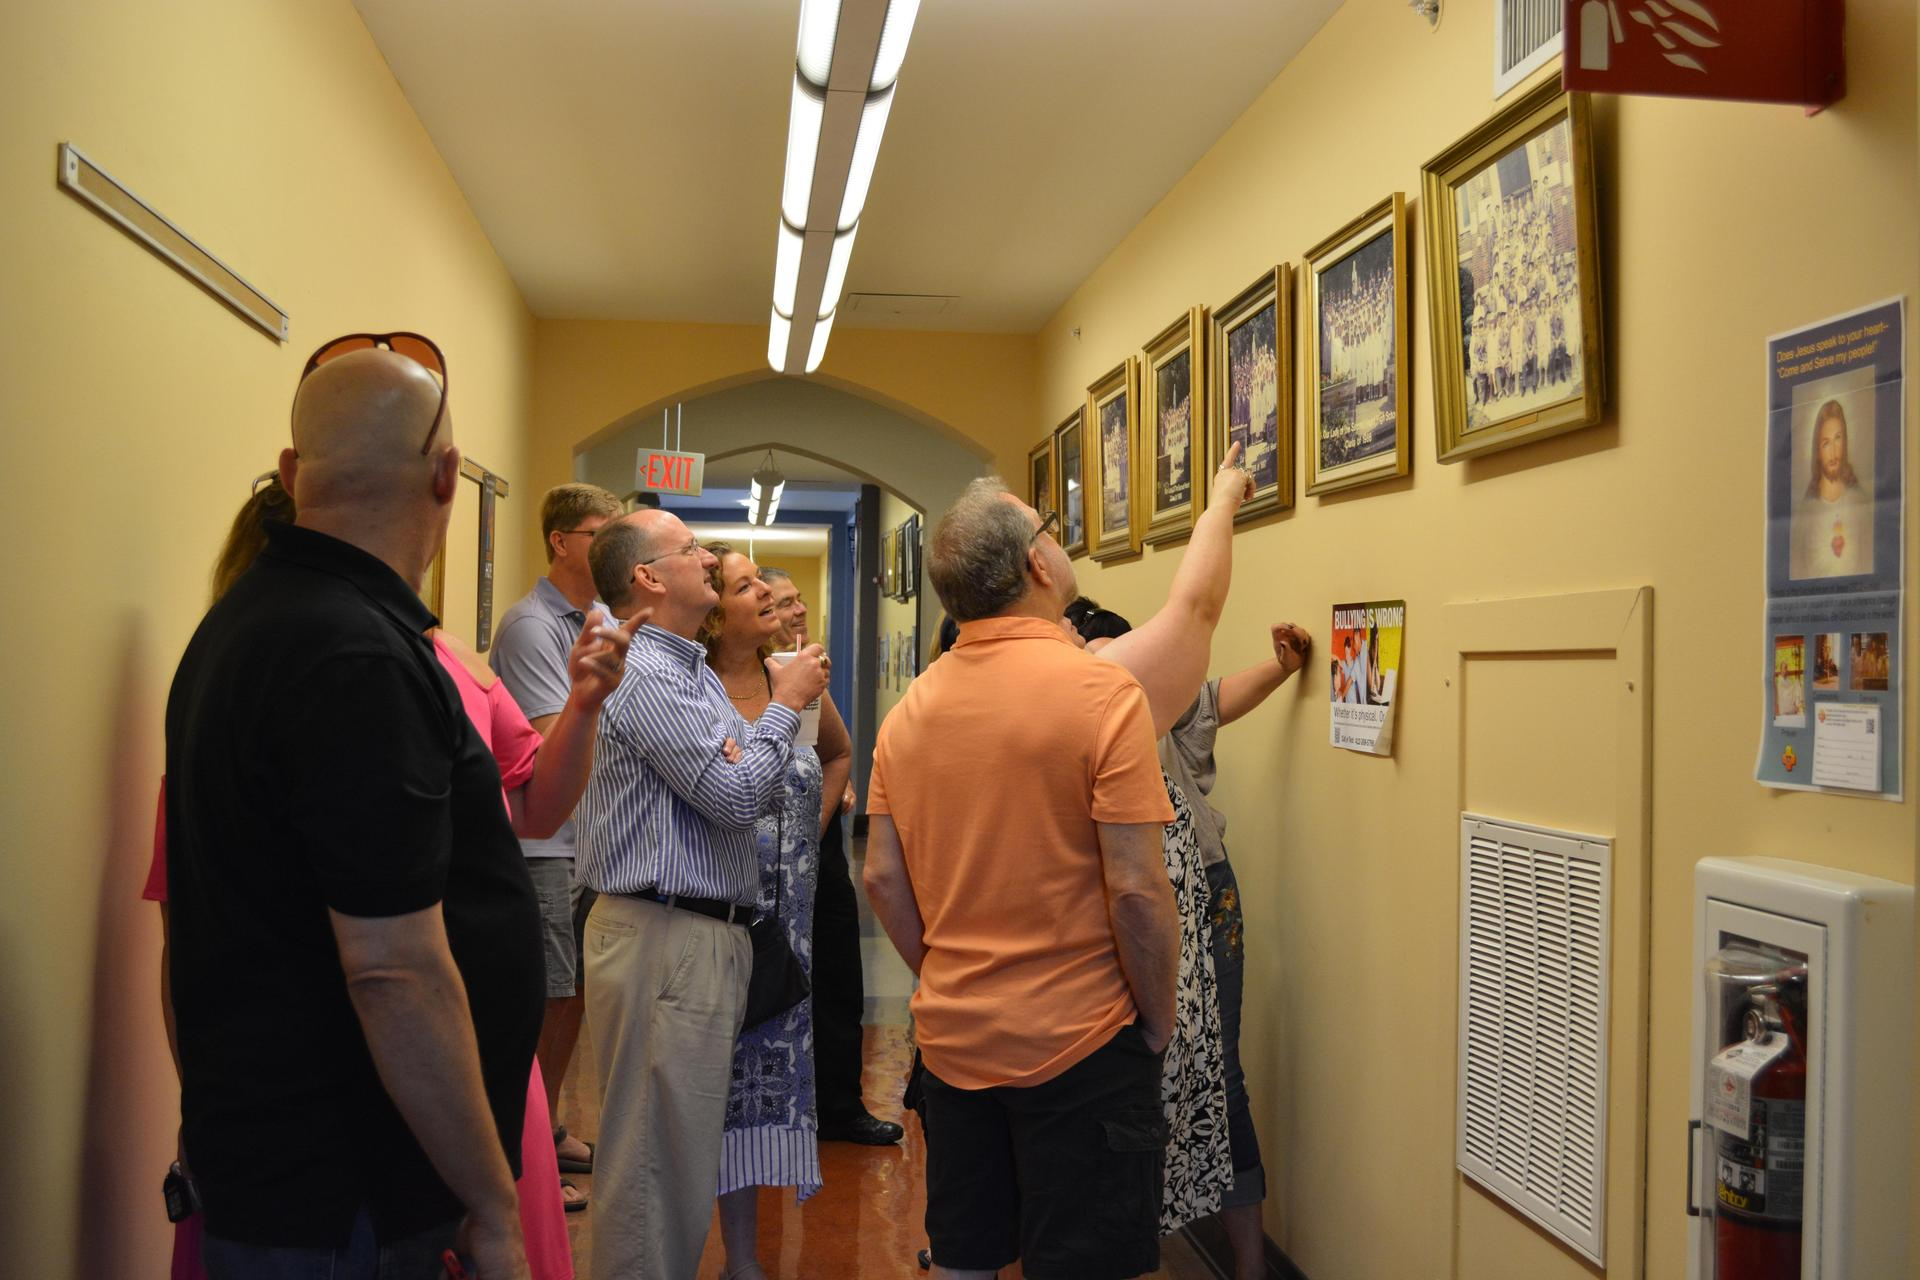 Alumni visiting the school check out their graduation photo hanging in the hall